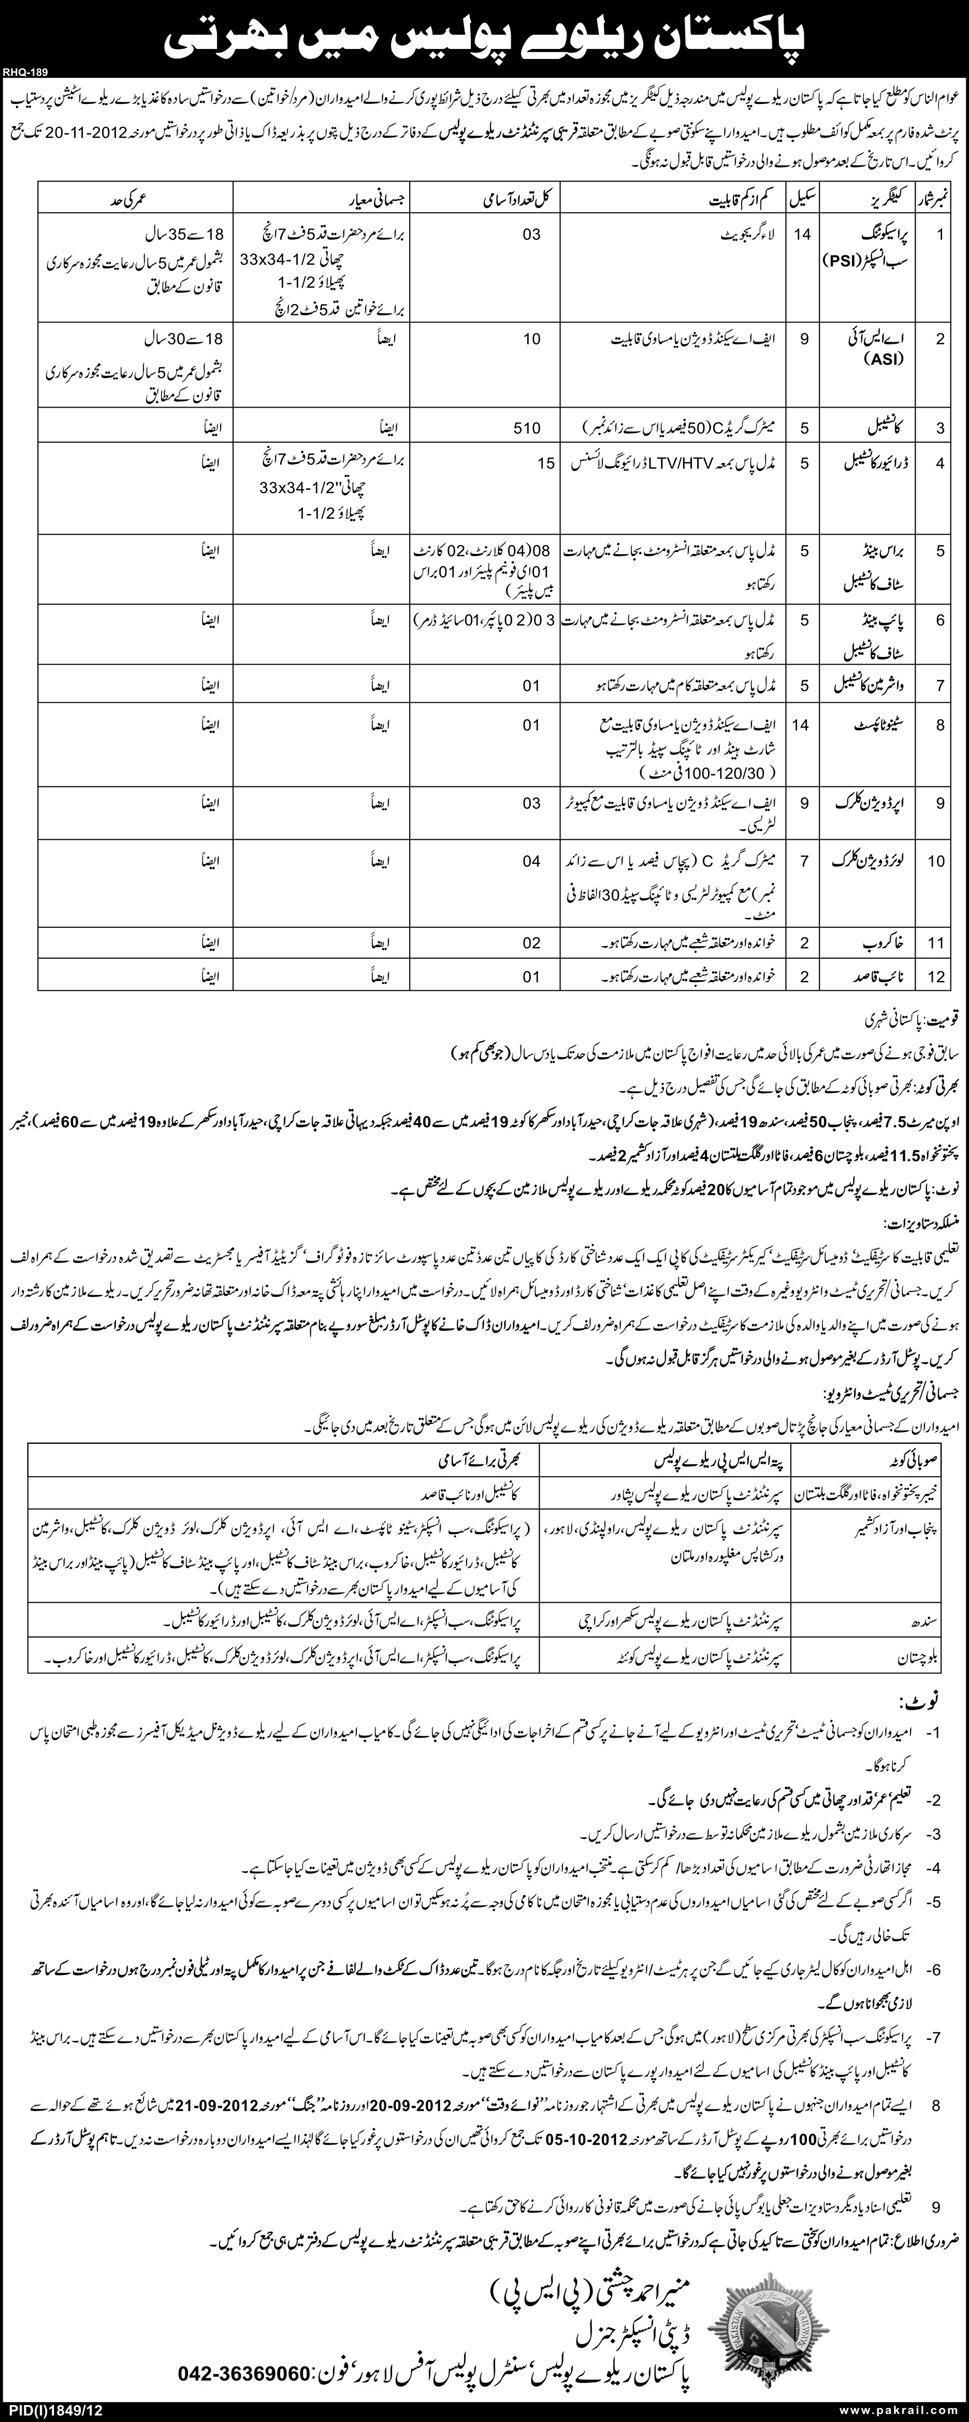 Pakistan Railway Police Jobs 2012